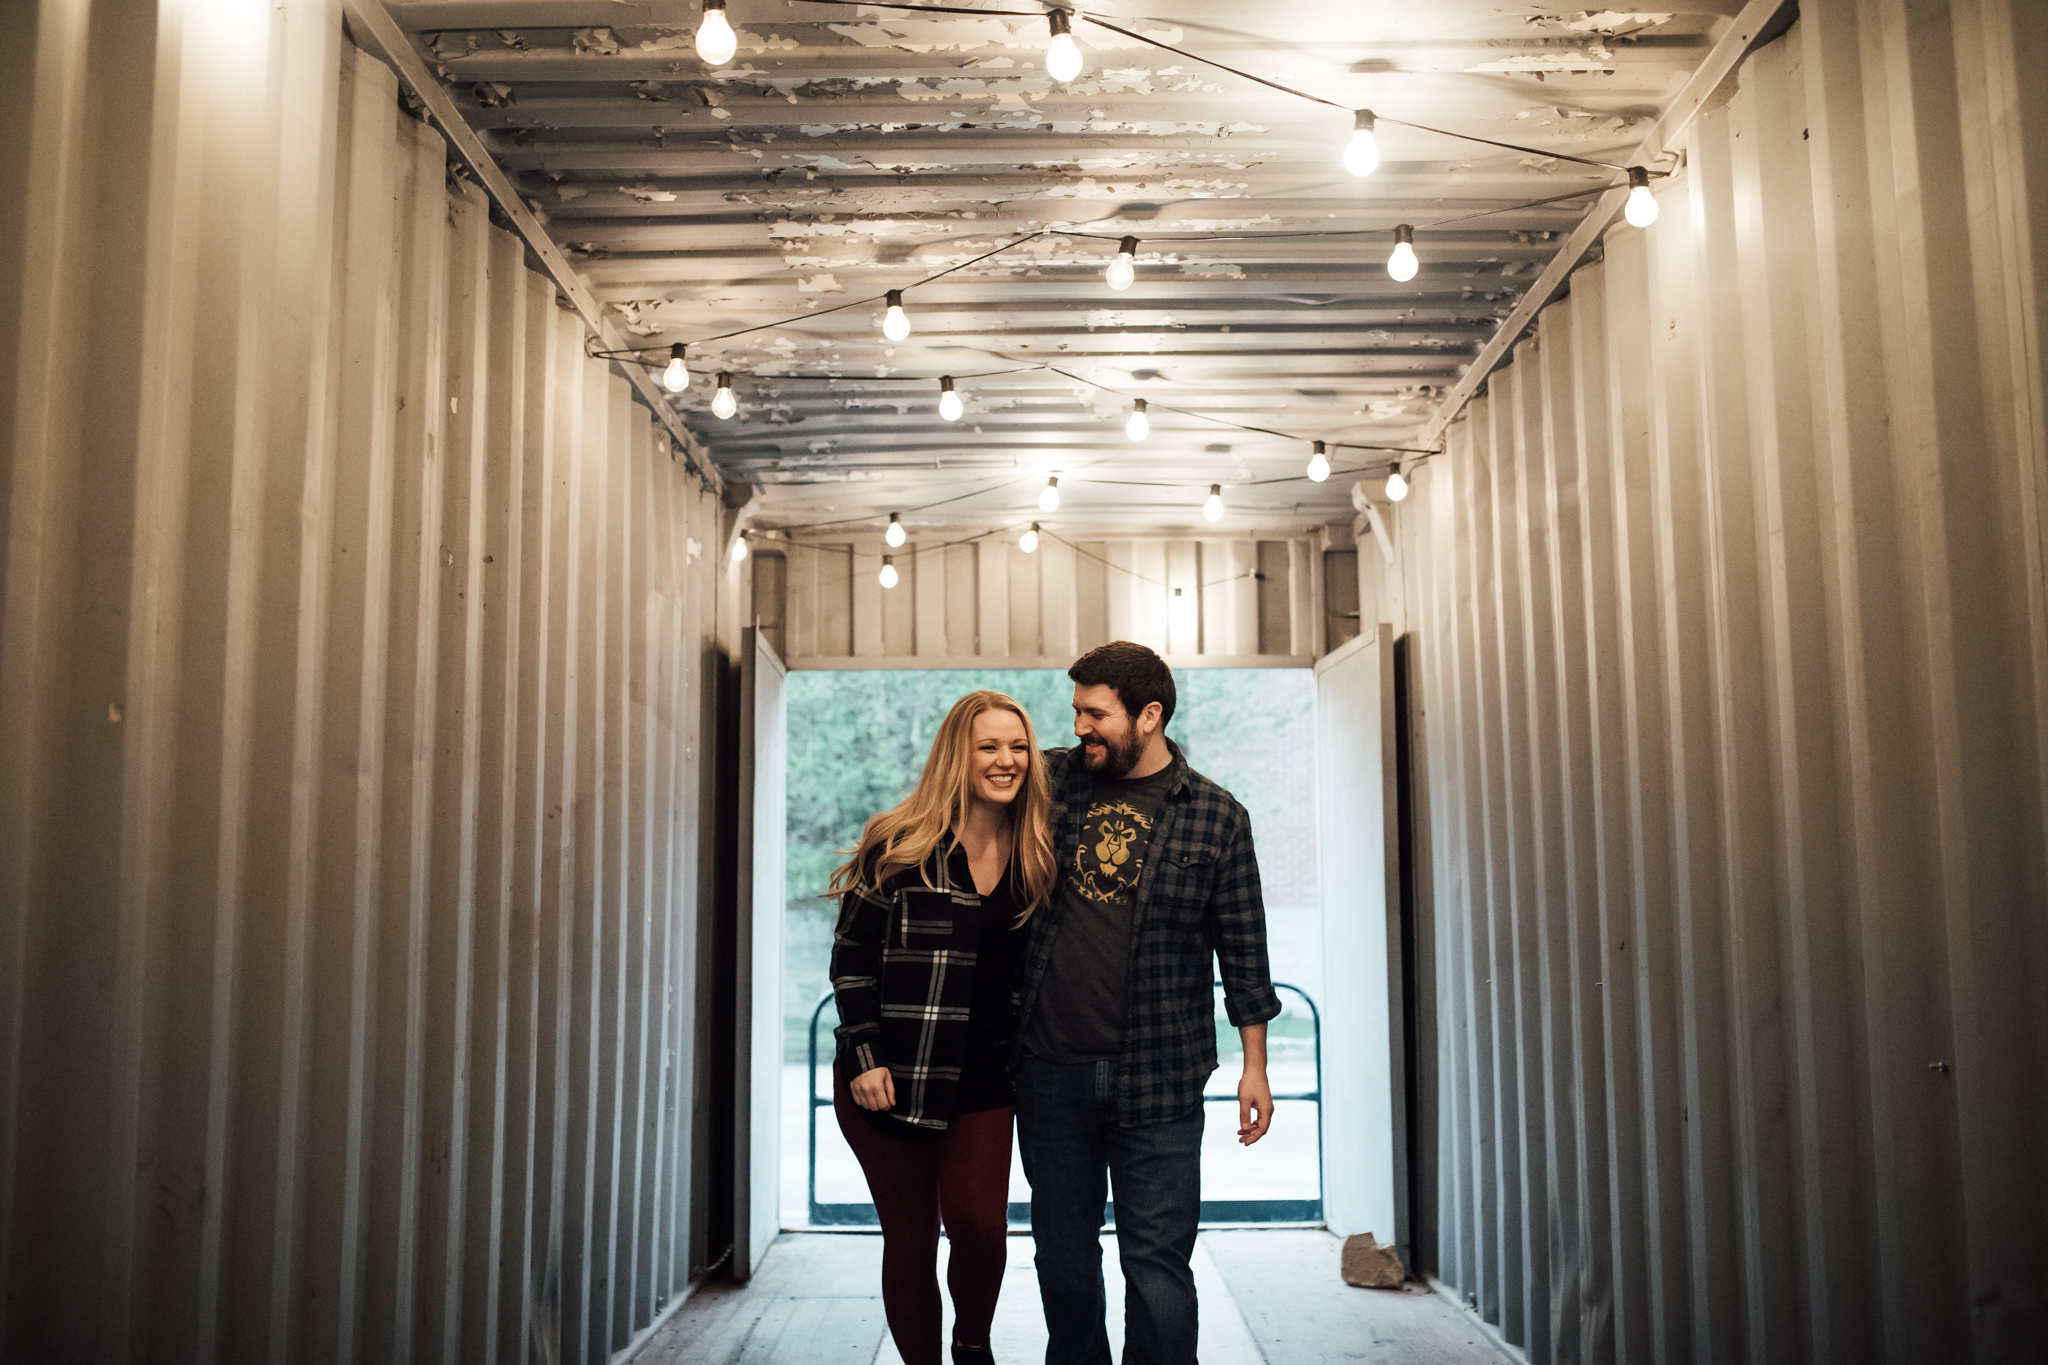 wiseacre-brewing-wedding-photographer-the-warmth-around-you-cassie-cook-photography (29 of 64).jpg